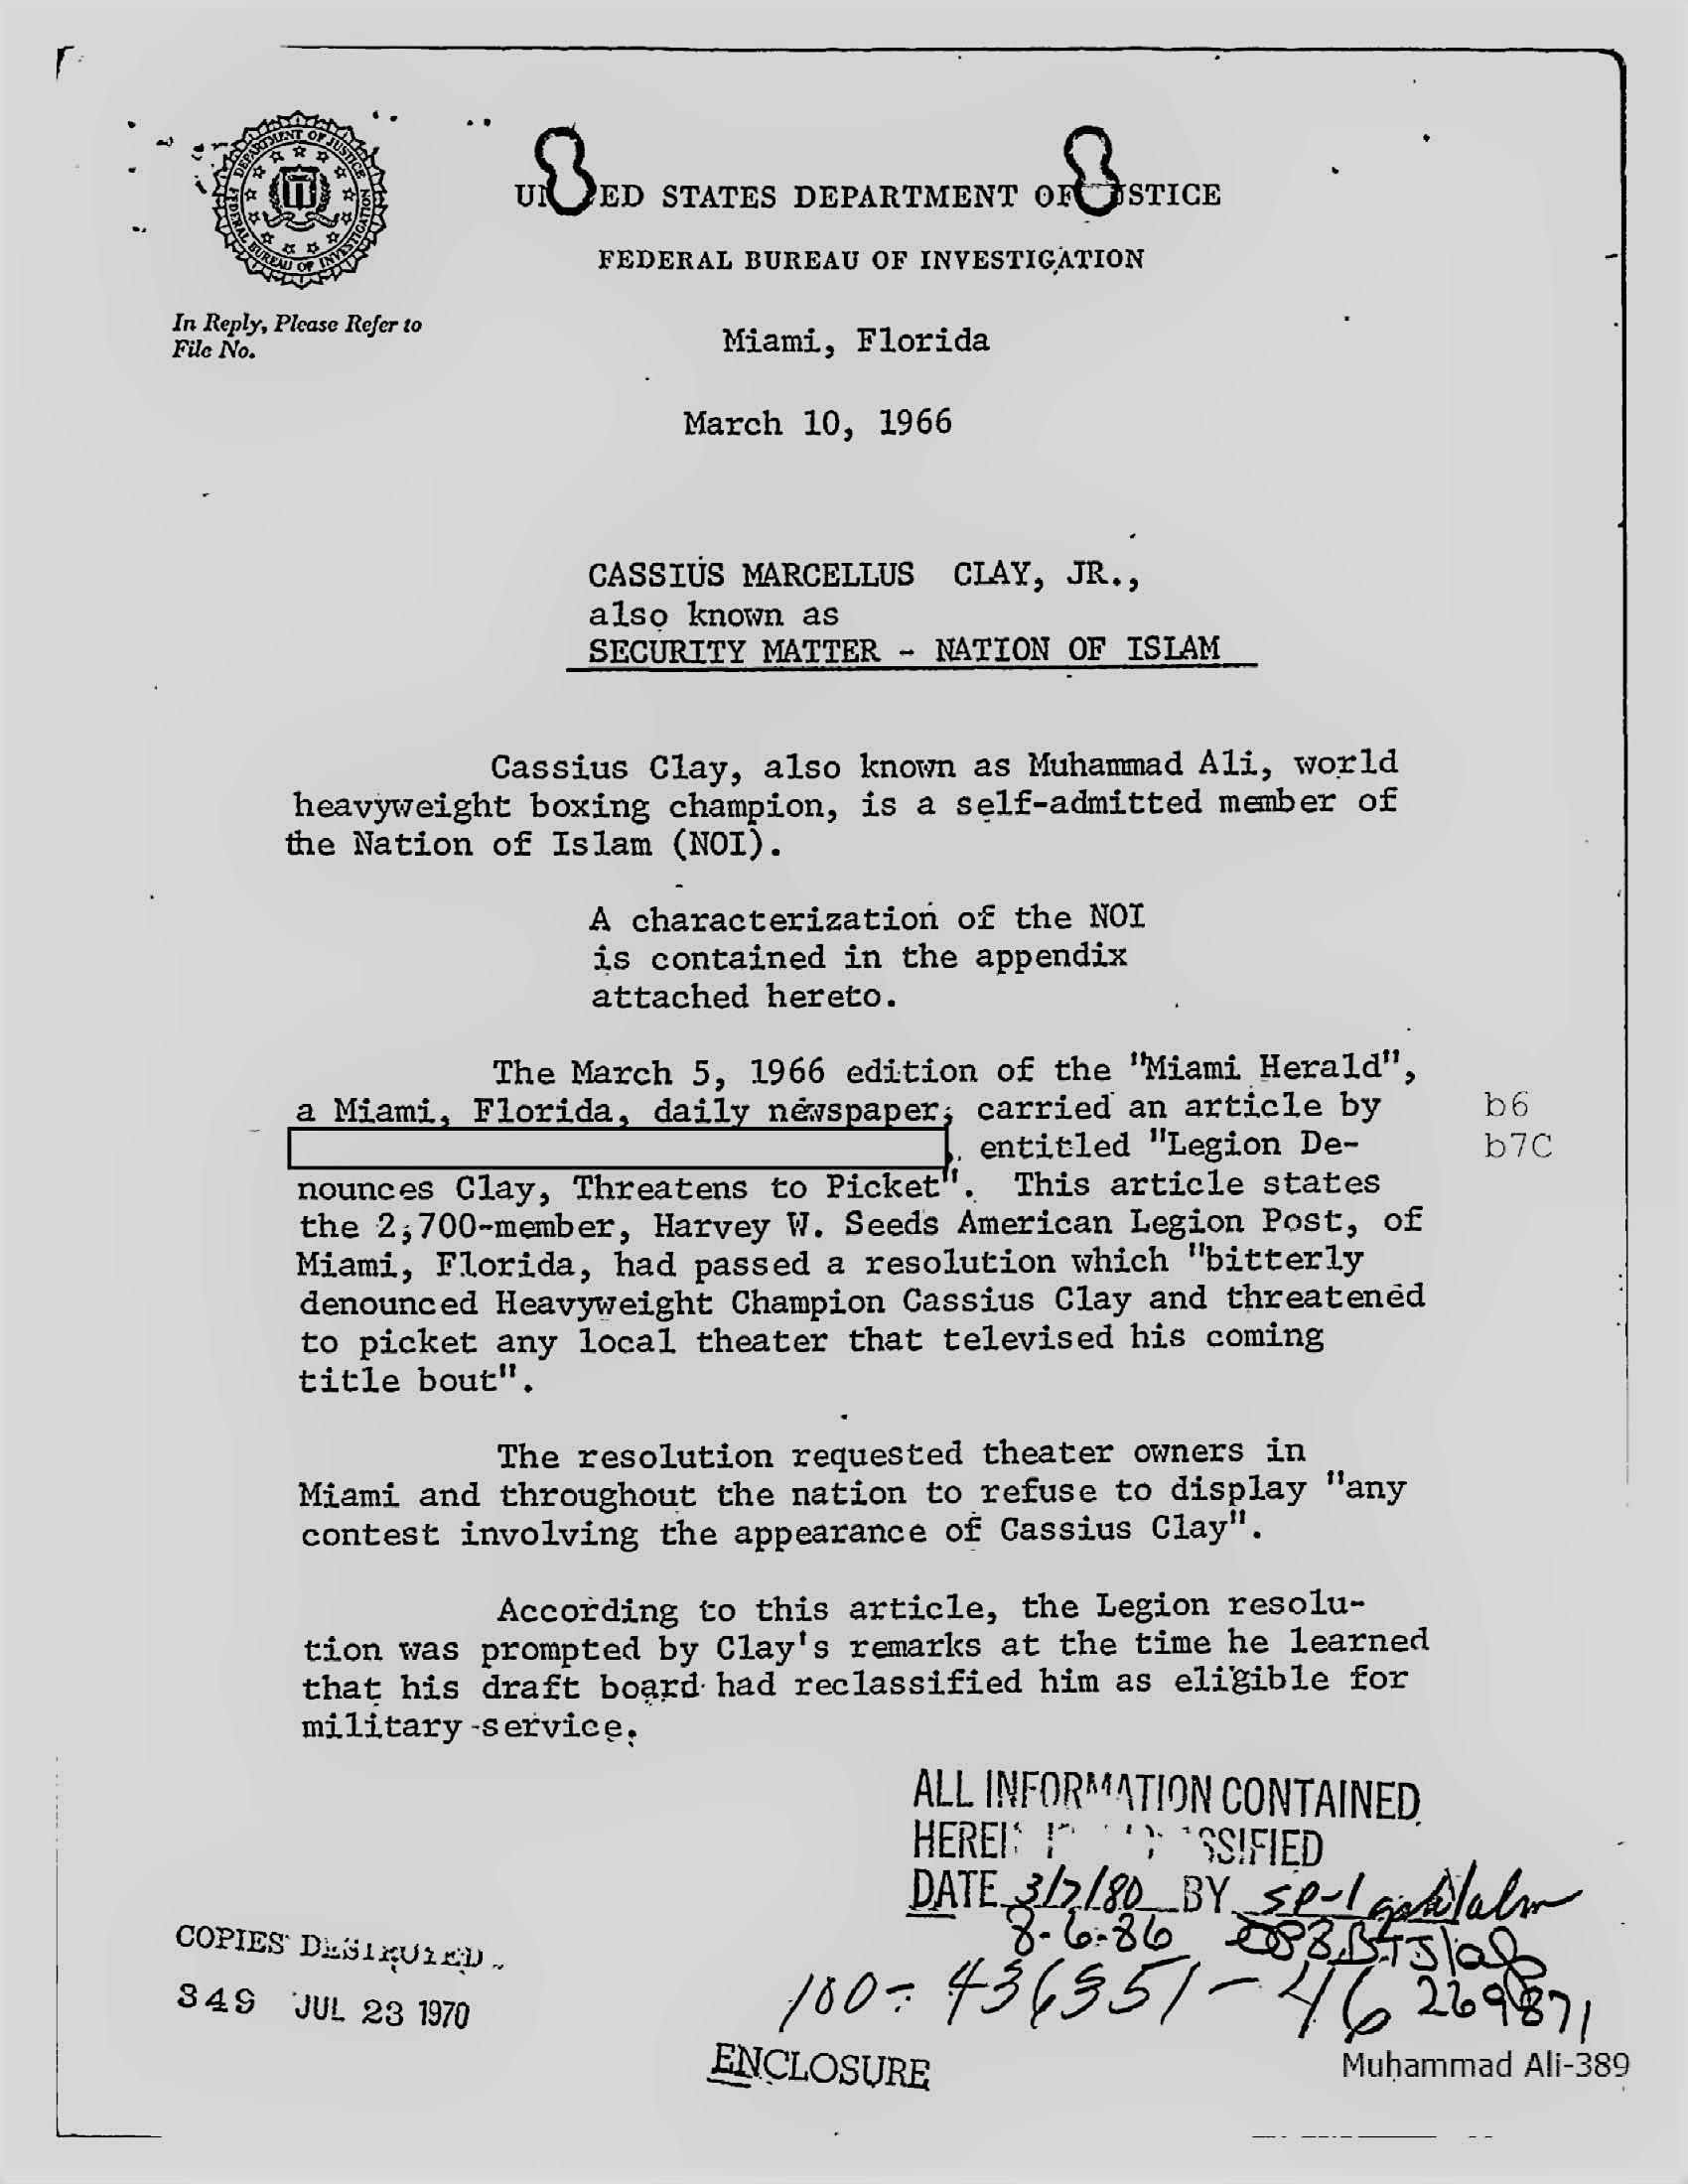 Page from FBI File on Muhammad Ali